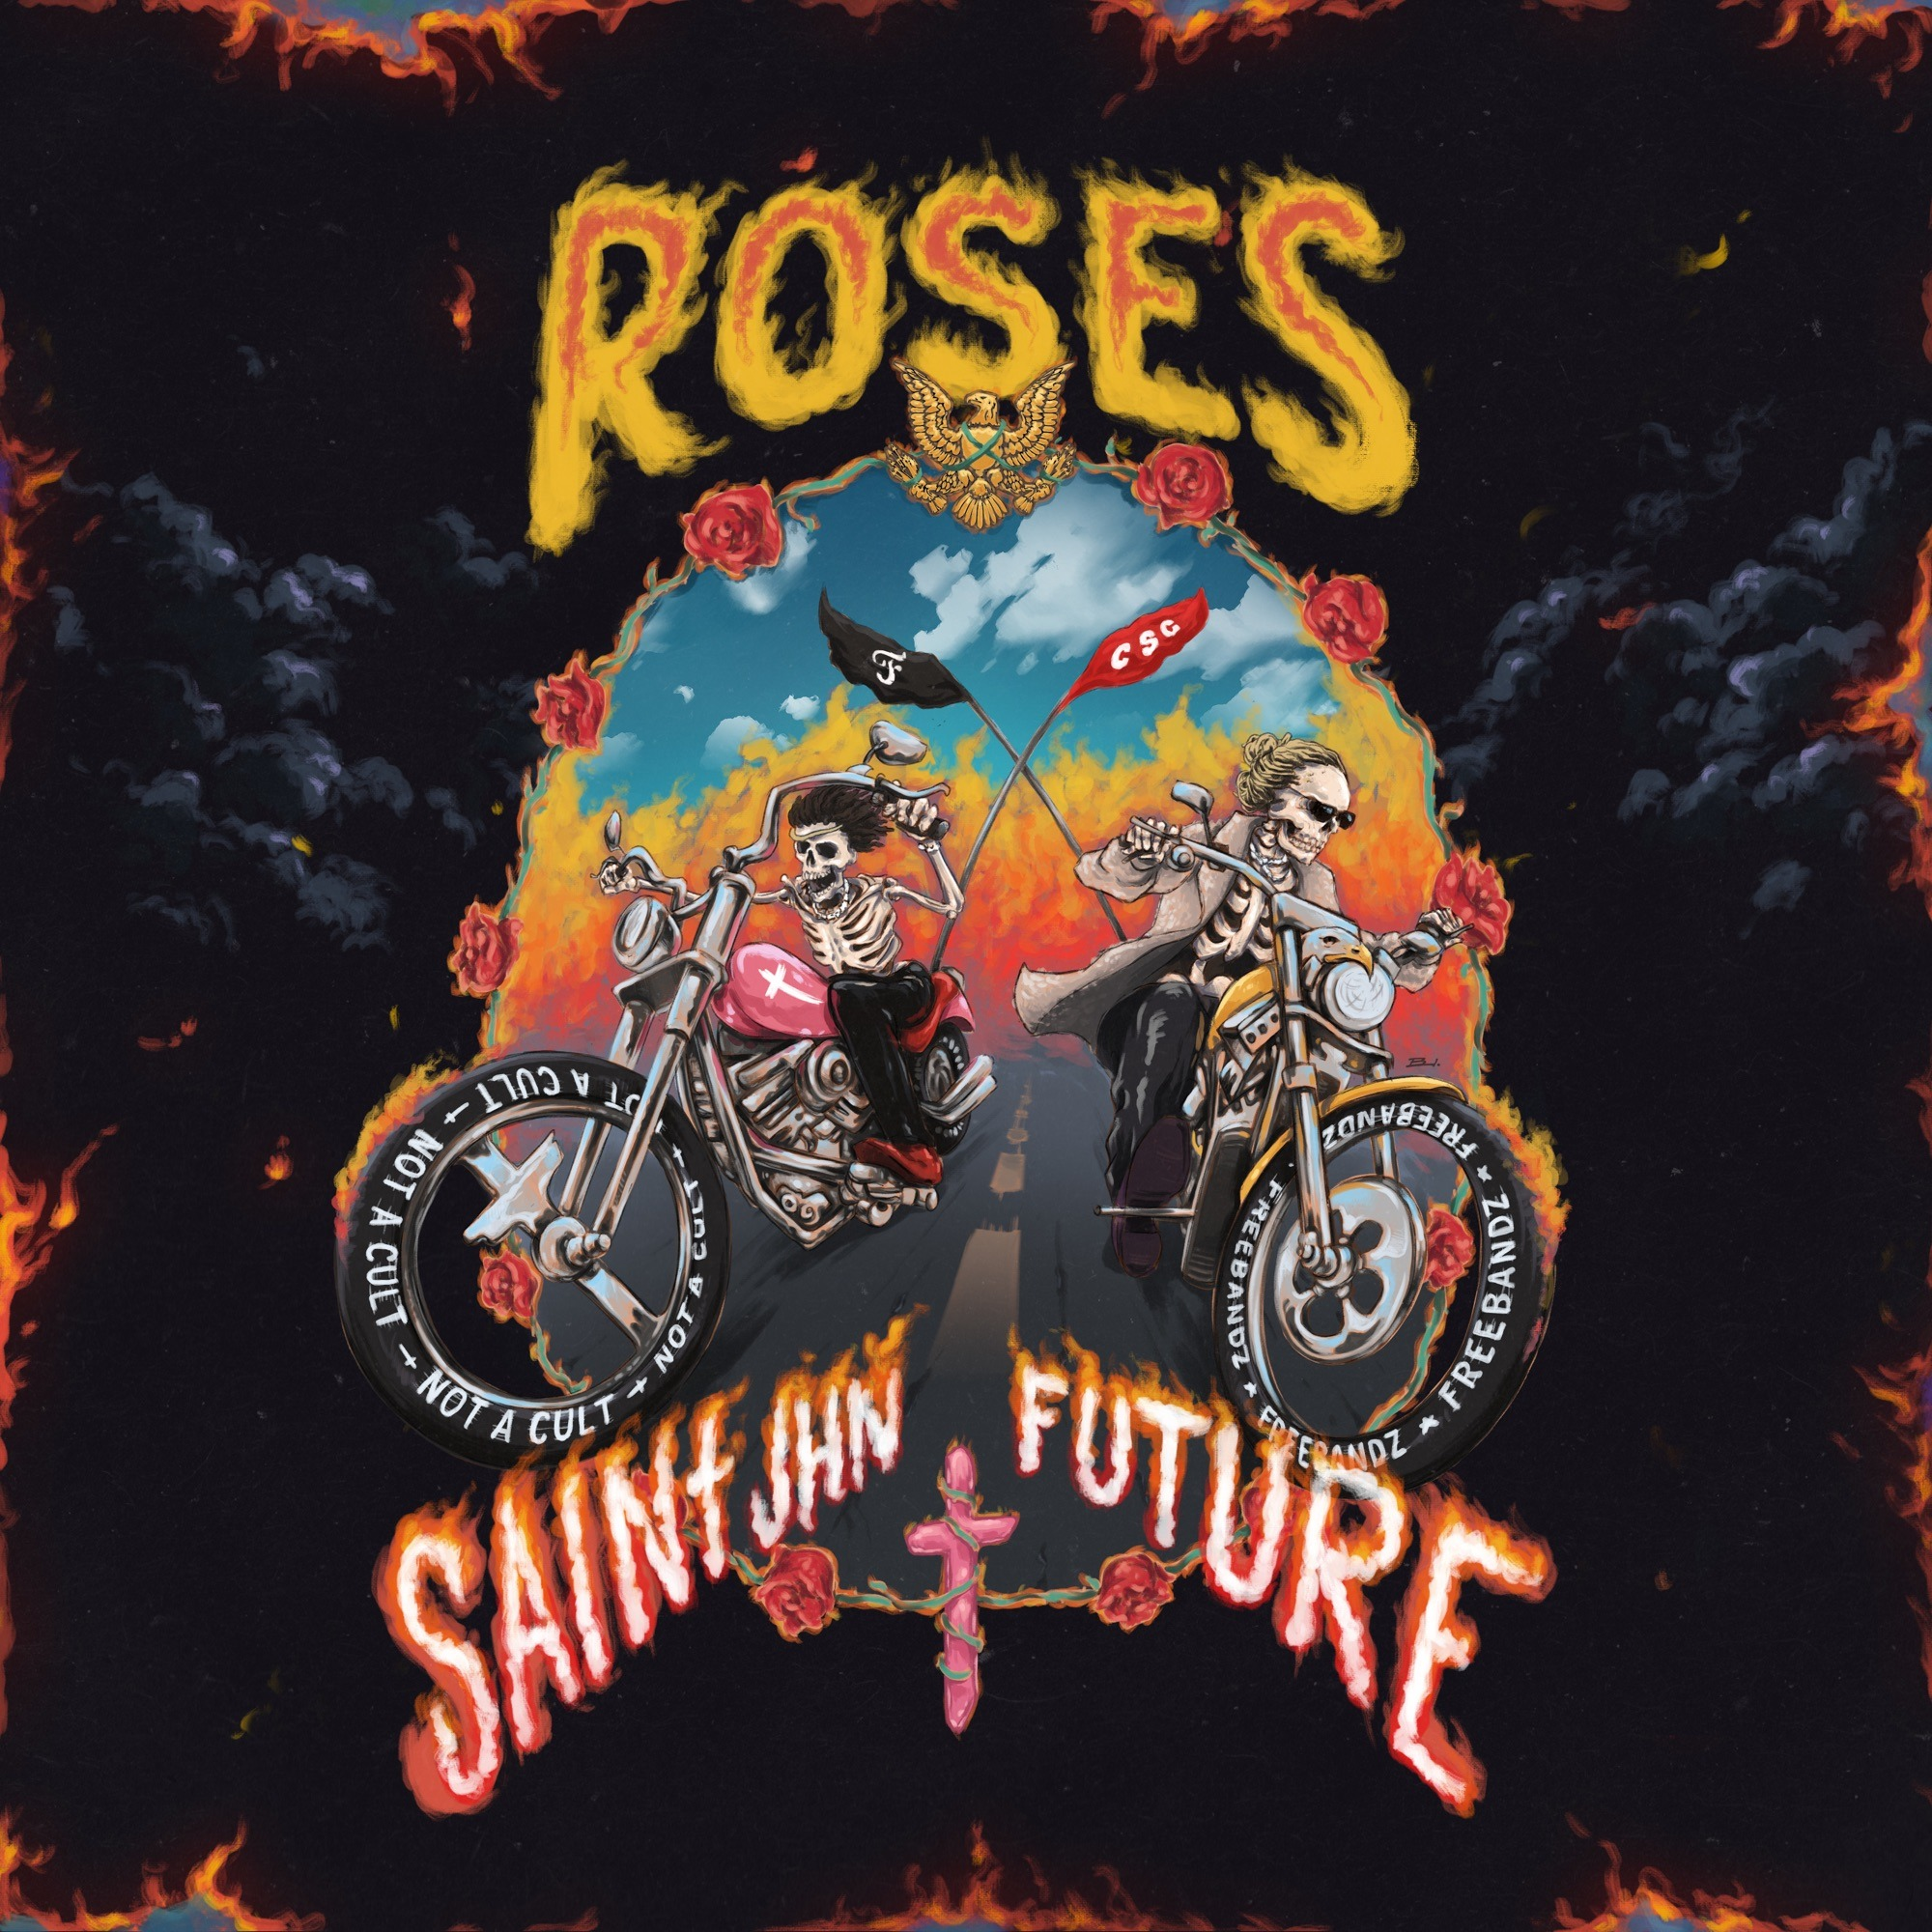 SAINt JHN feat. Future – Roses (Remix)